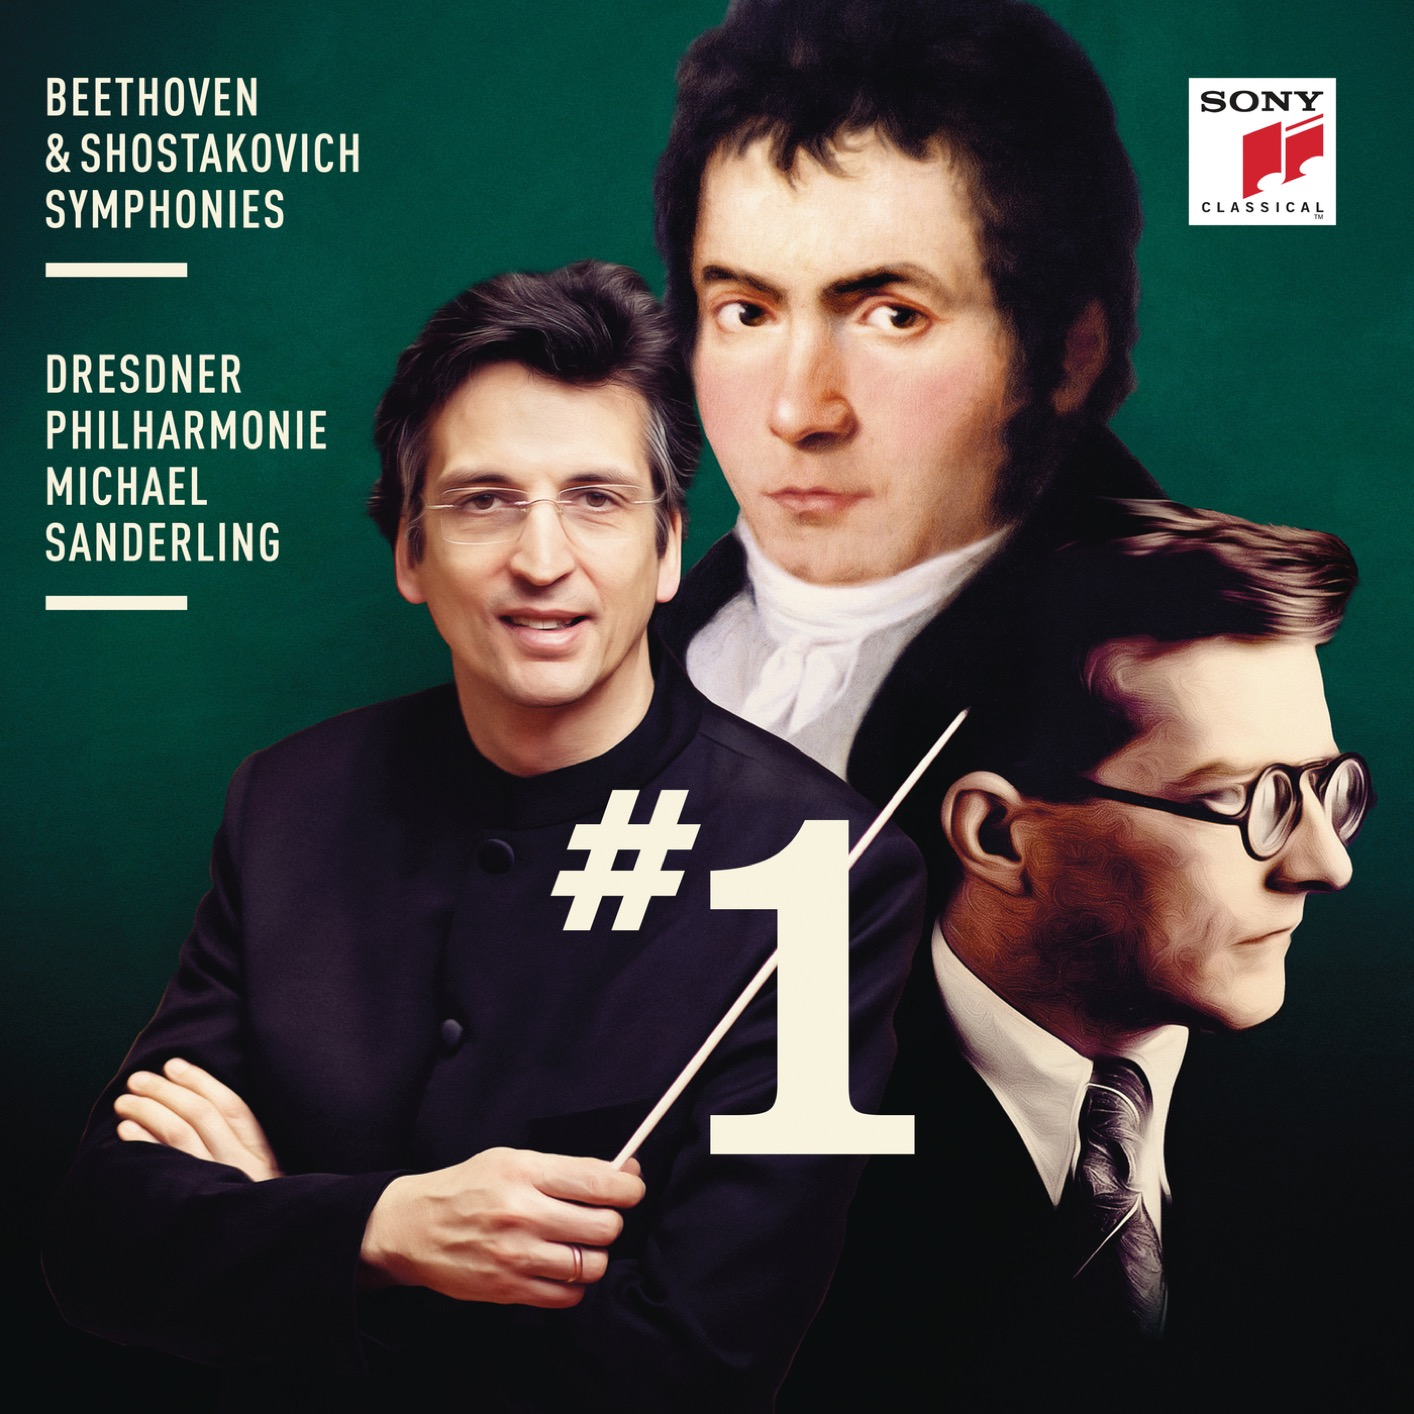 pelicula copying beethoven megaupload